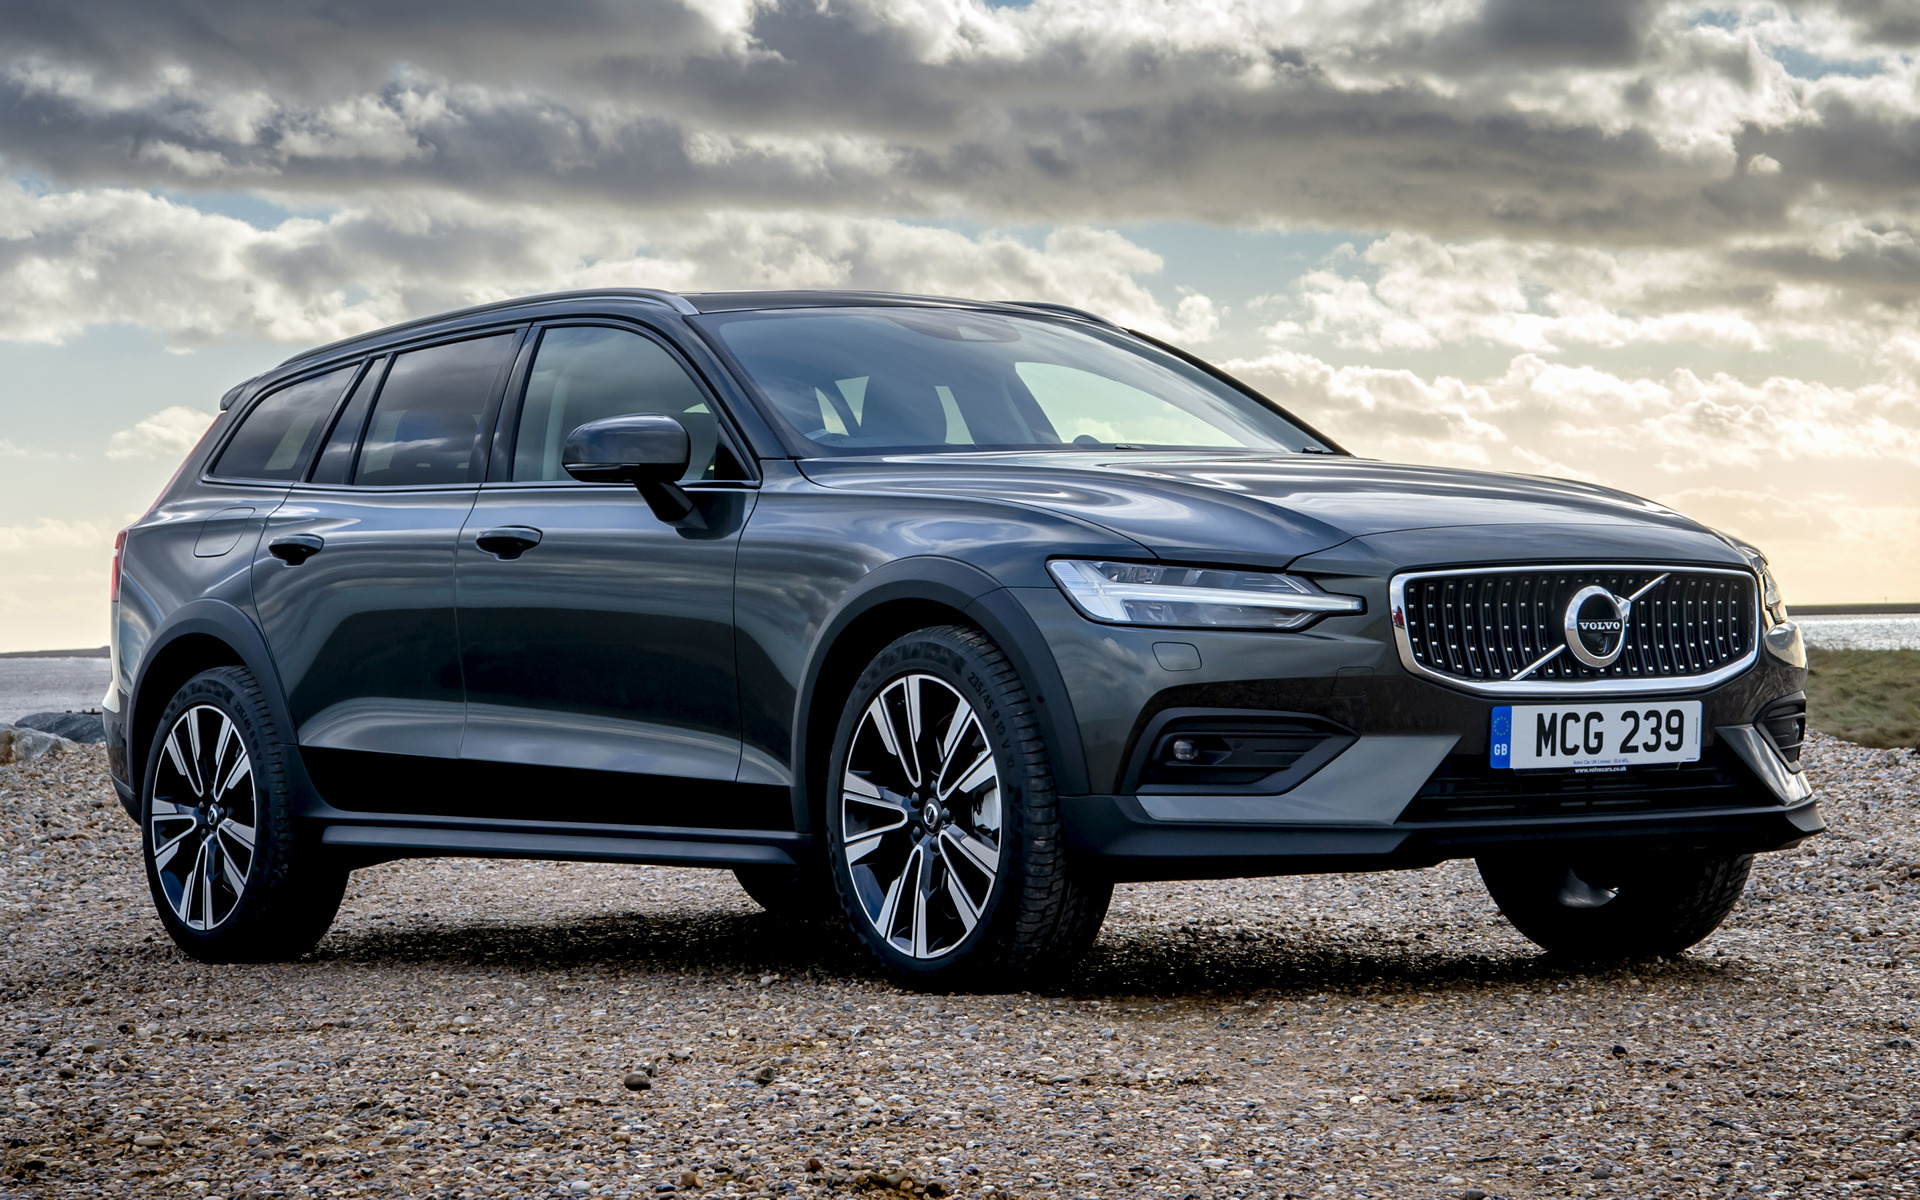 2019 Volvo V60 Cross Country UK   Wallpapers and HD Images Car 1920x1200